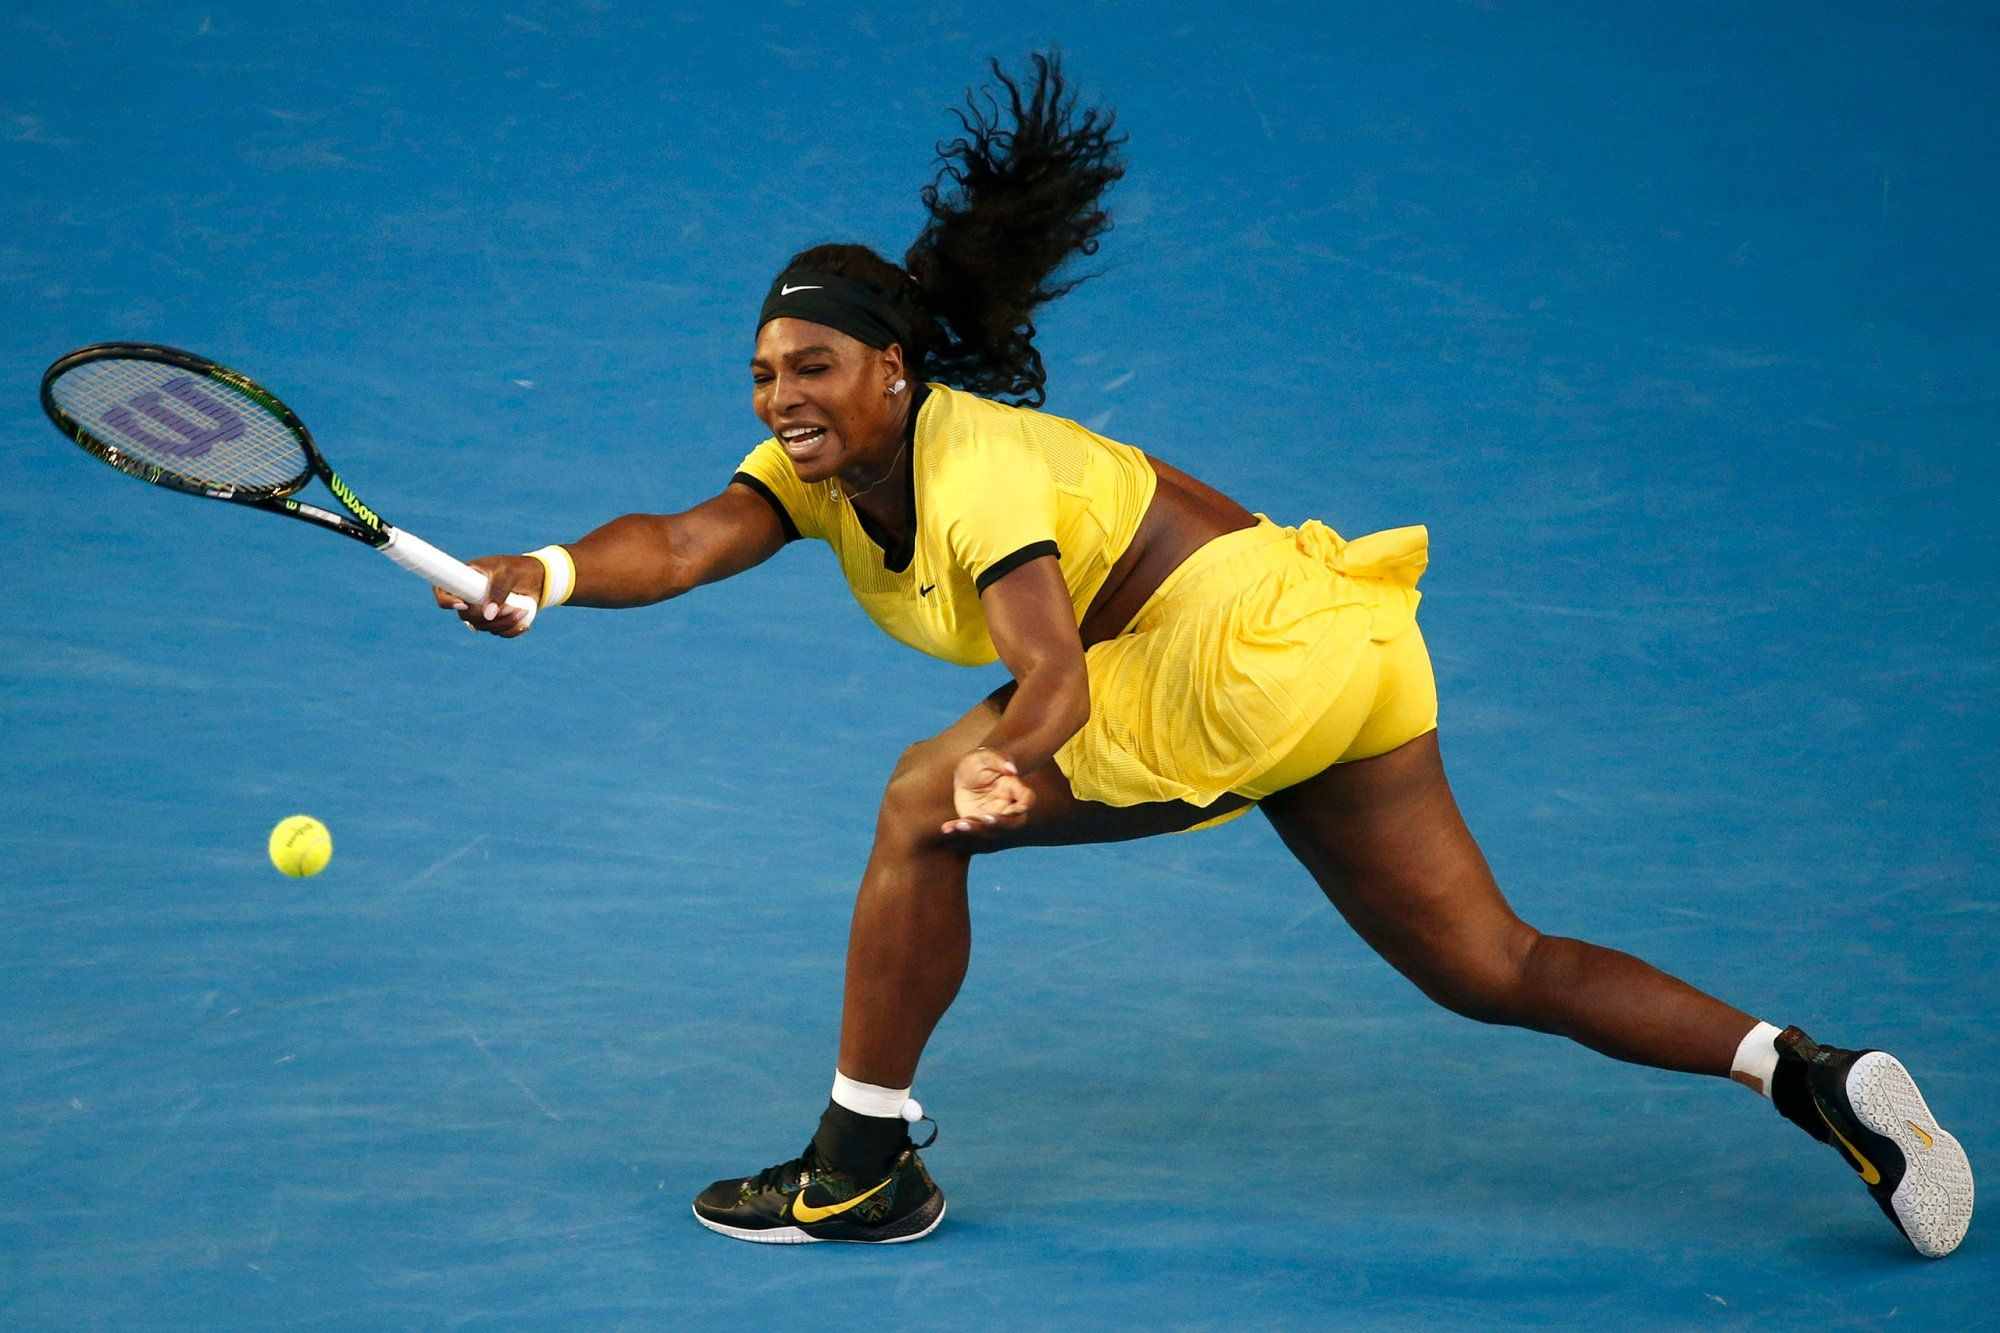 Is Serena Williams Underpaid Women S Tennis At Match Point Serena Williams Tennis Match Point